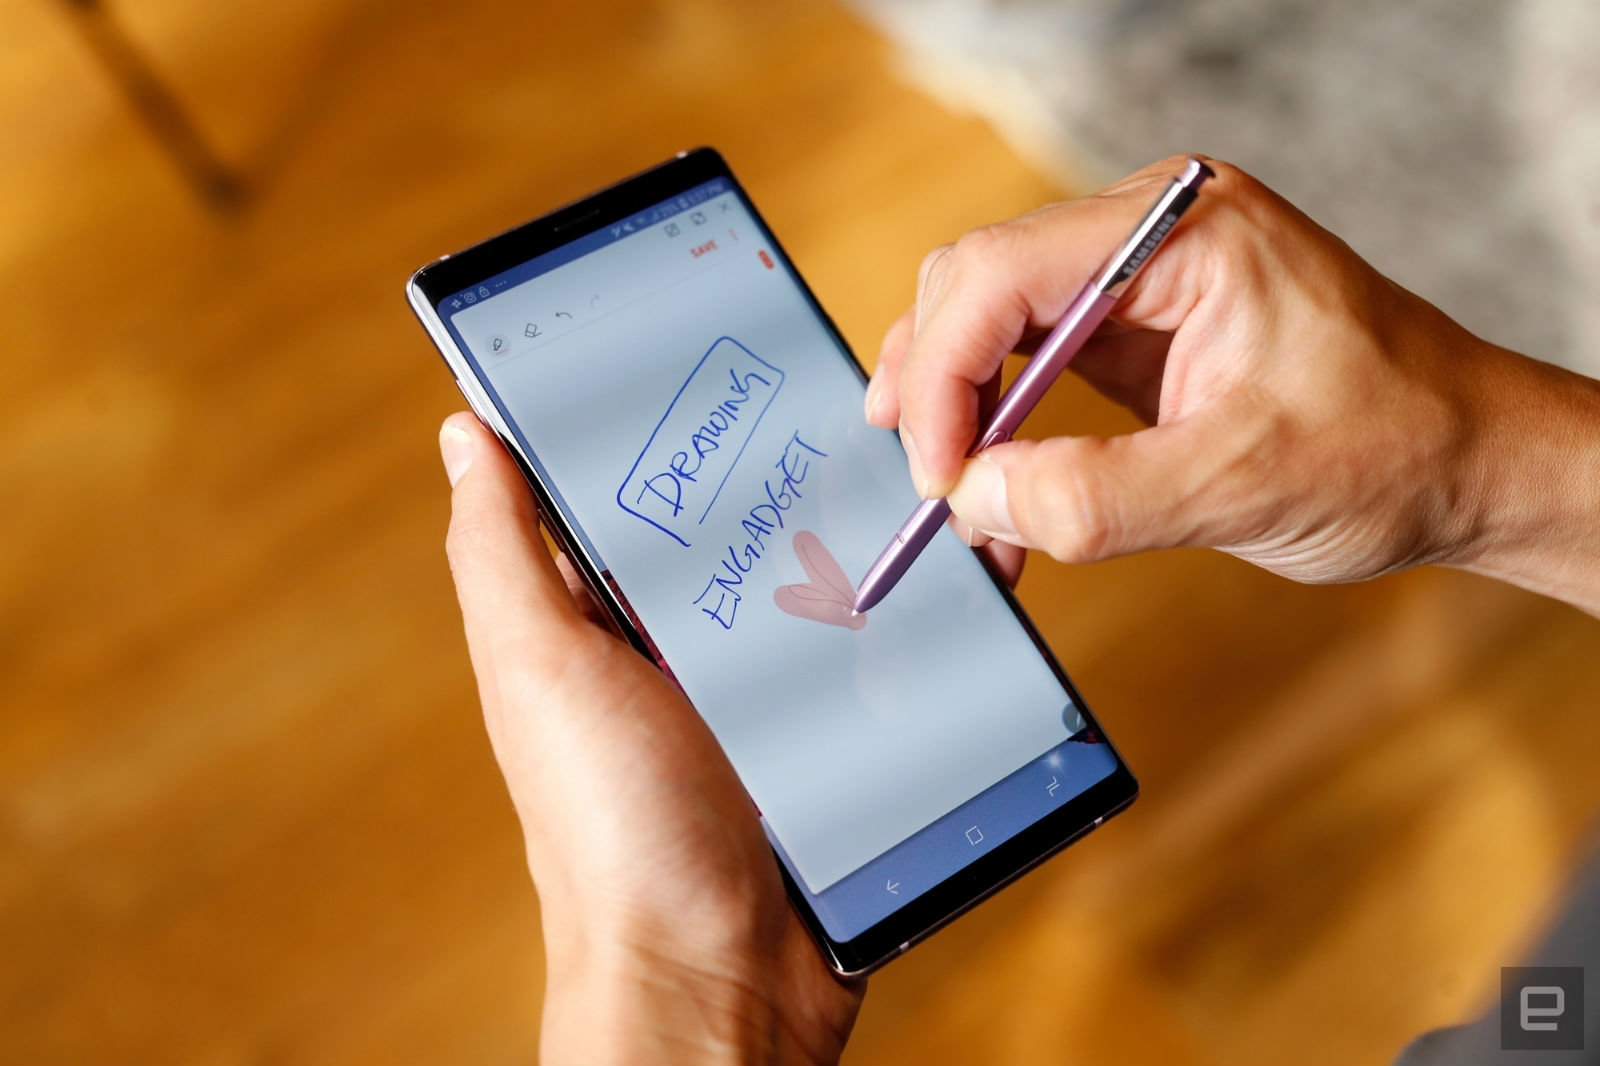 Someone at Samsung thinks a stylus with a camera is a good idea | DeviceDaily.com